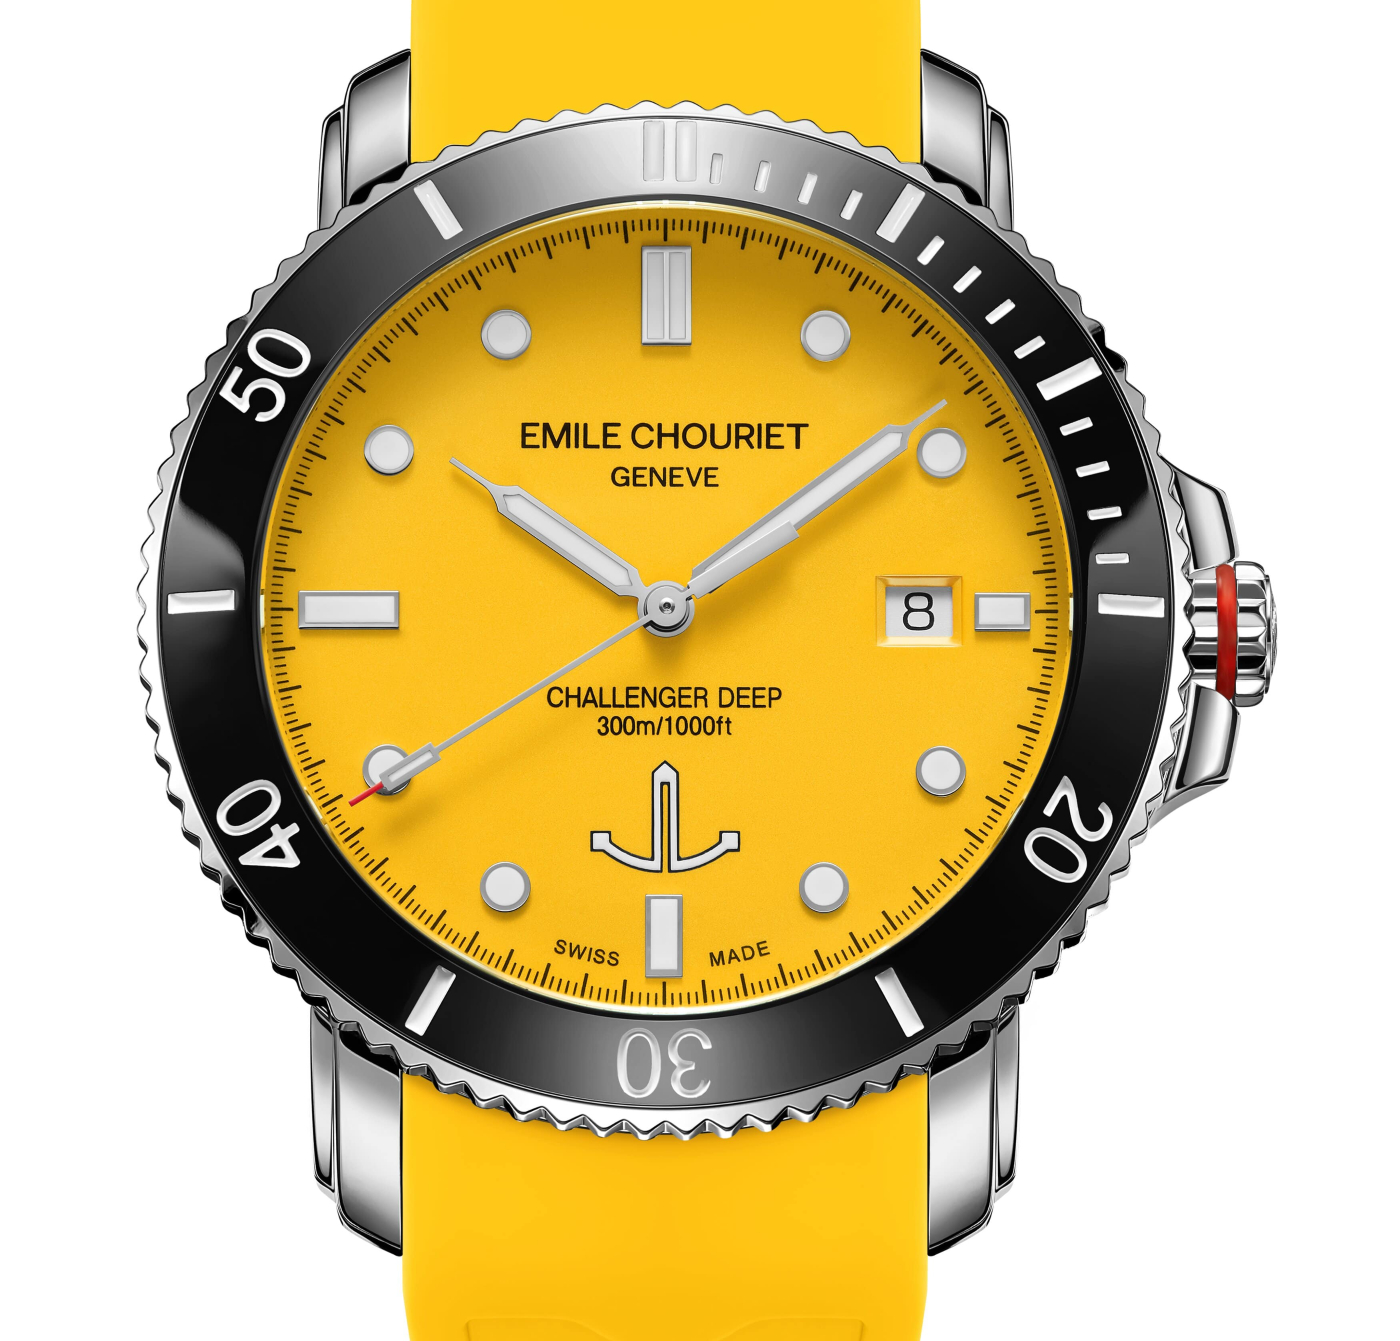 Emile Chouriet: new colours for the Challenger Deep